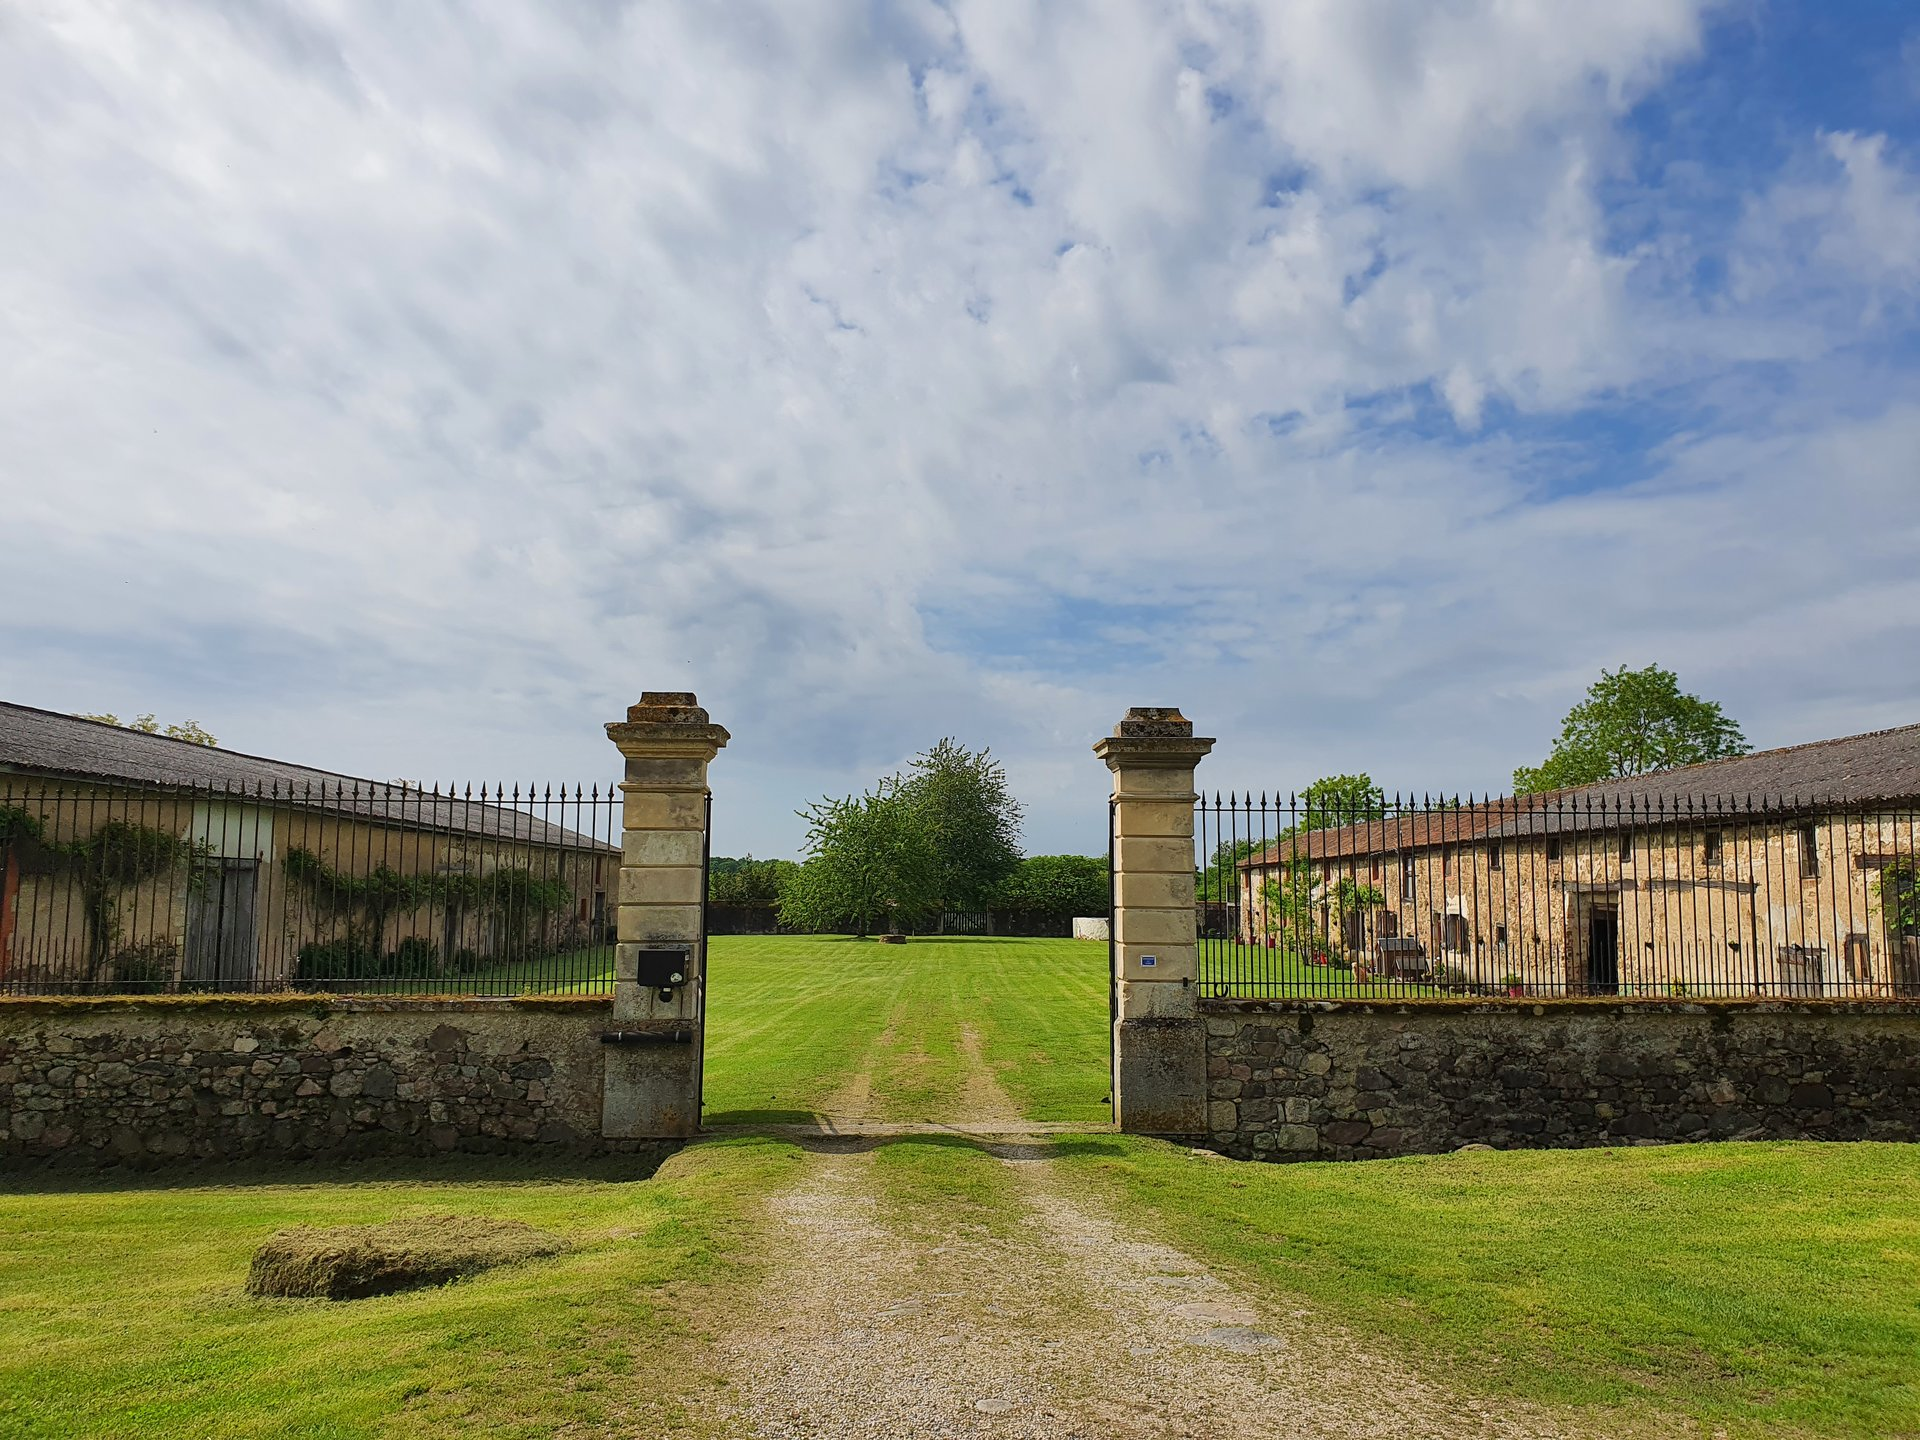 Renovated Former Château for Sale In Asnières 86-Vienne